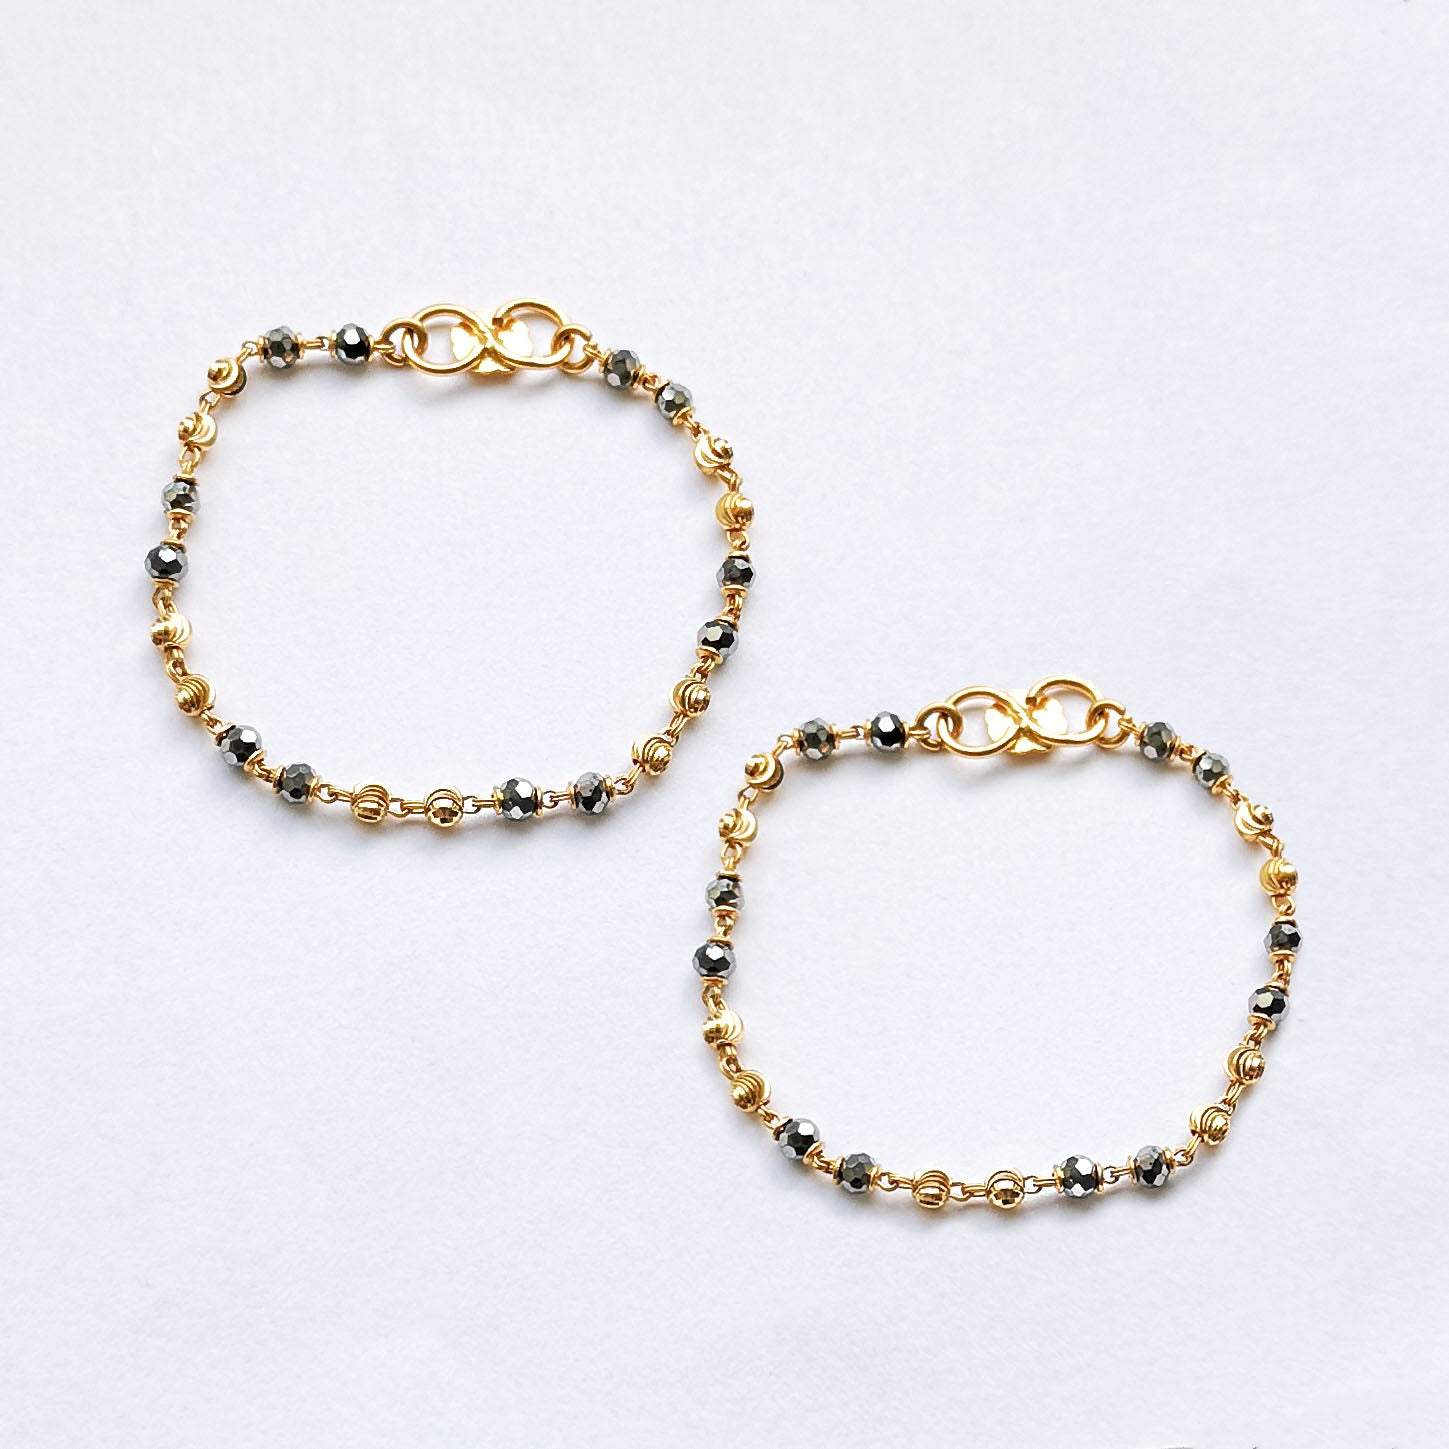 22ct Gold Children's Bracelets with Faceted Beads and Diamond Cut Design CBR-7911